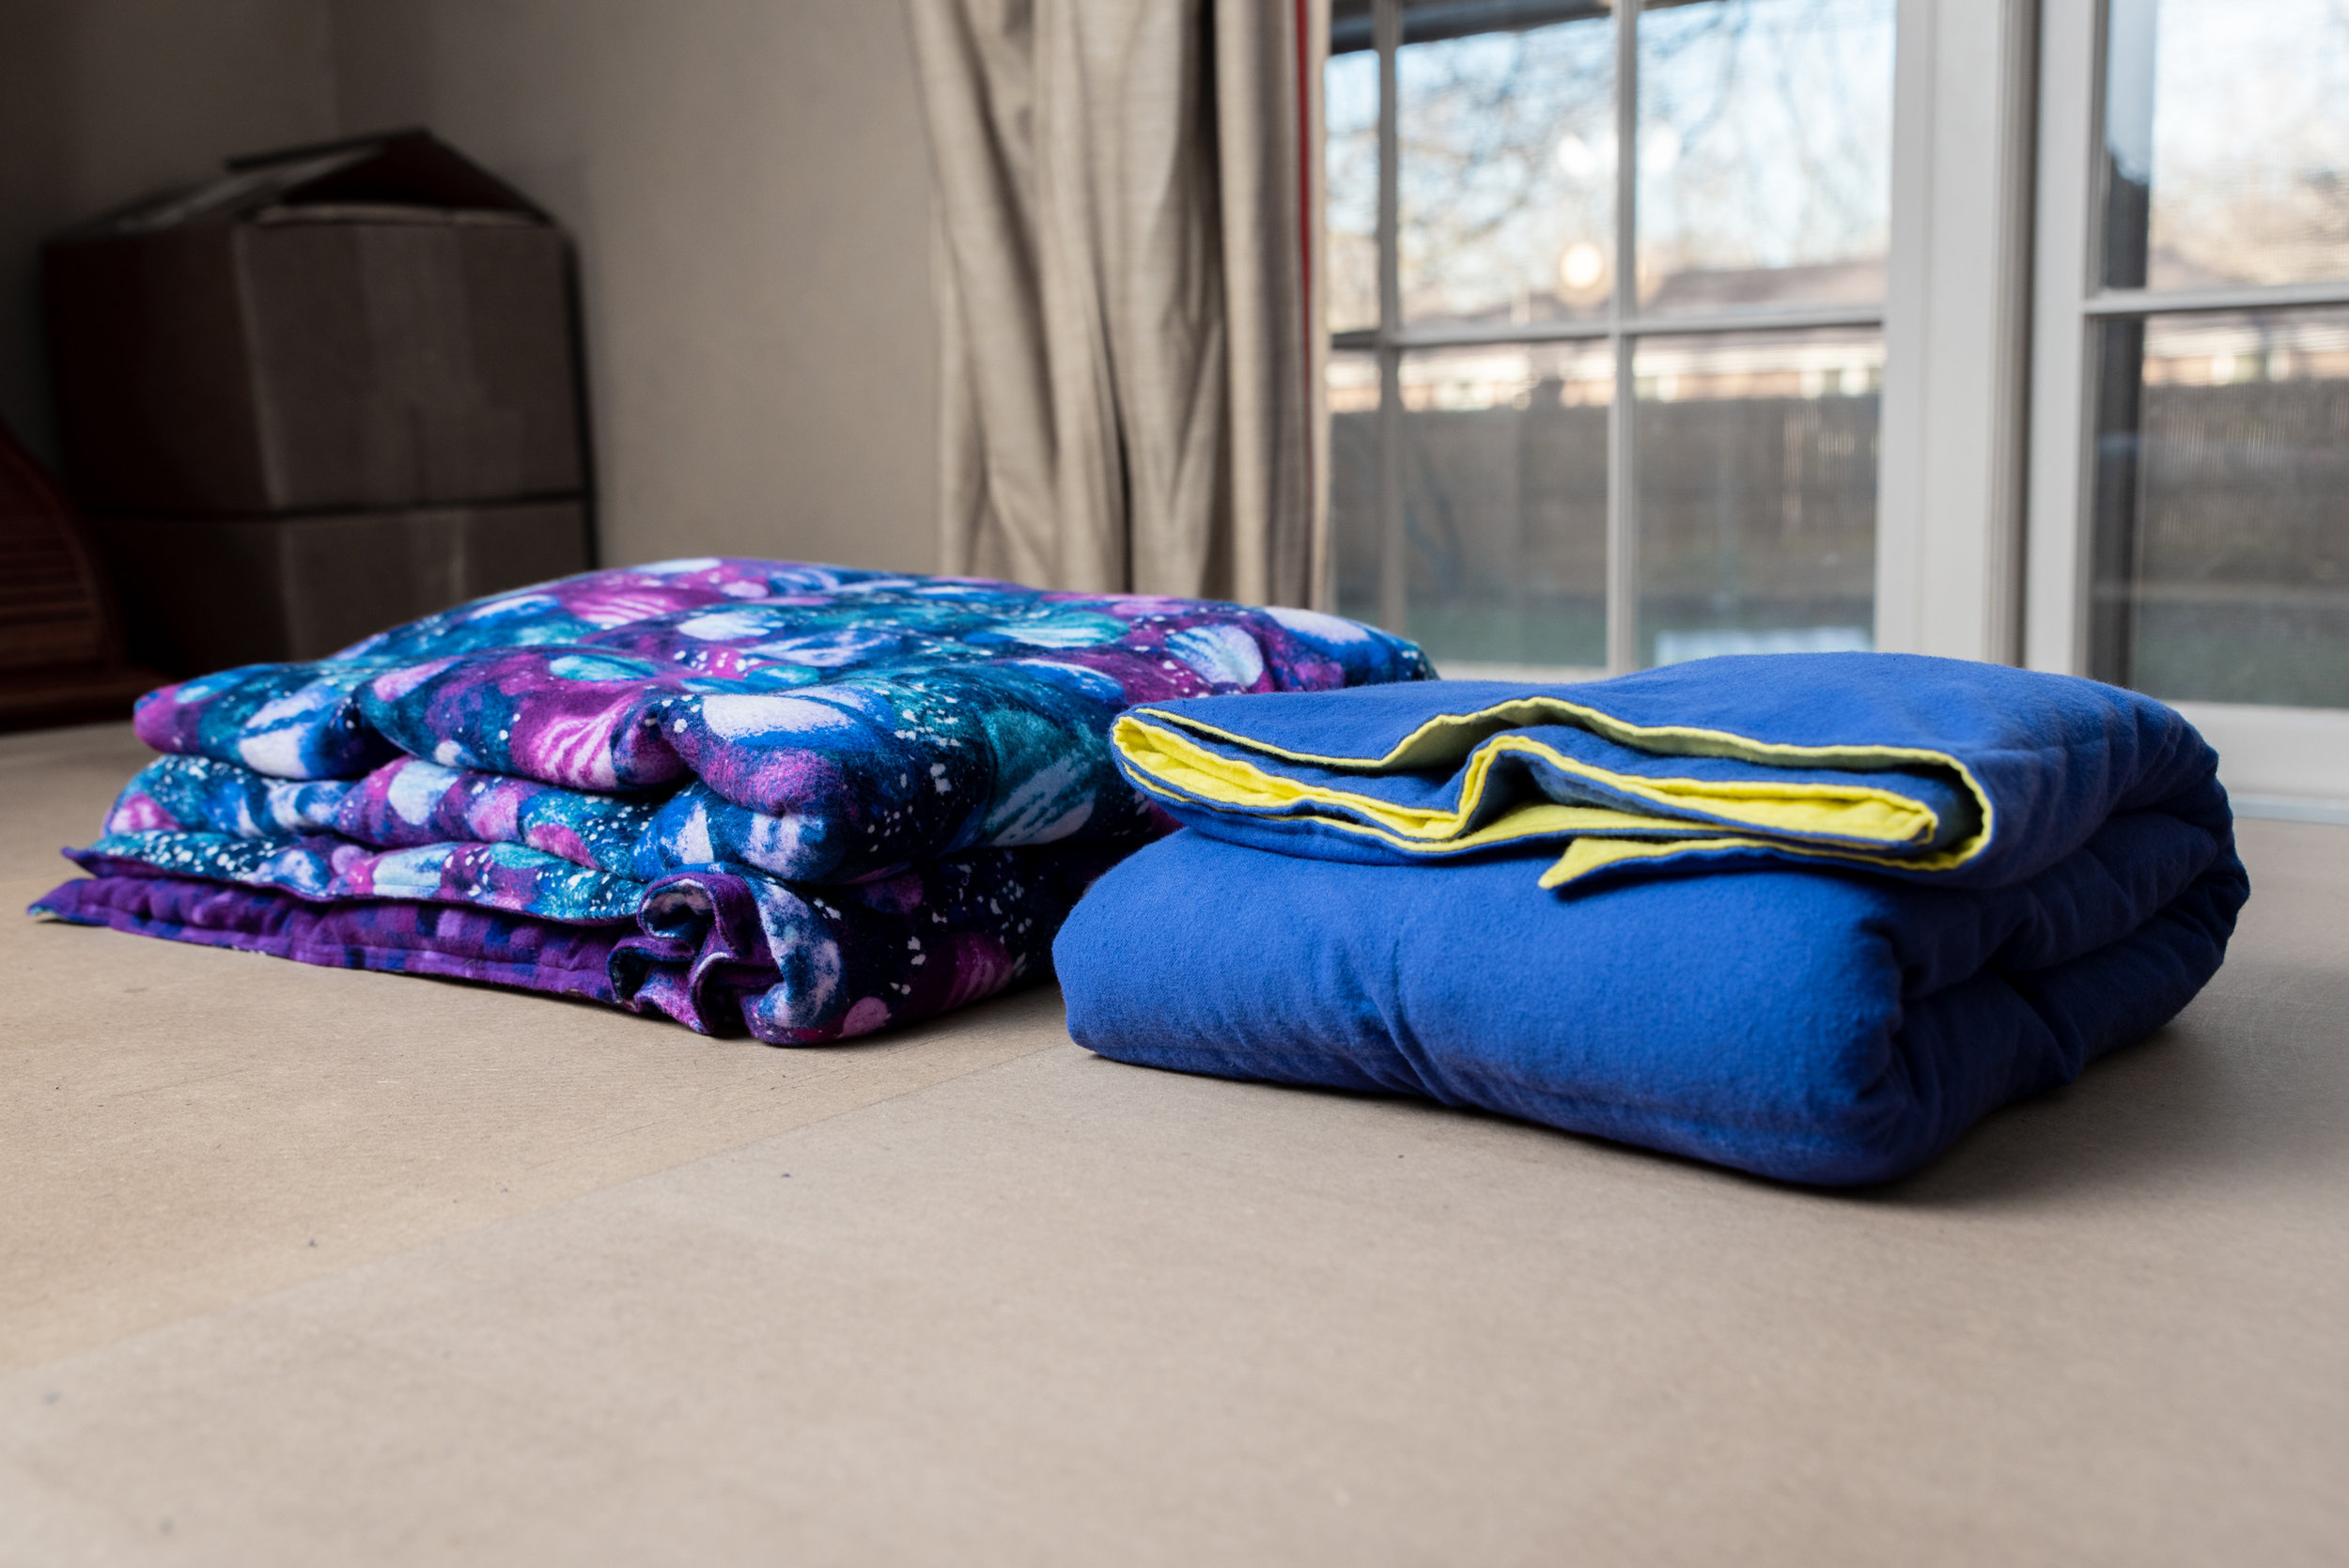 Two weighted blankets folded side by side on a bed. The one on the left has a fabric pattern of deep blues, purples and white and the one on the right is two toned, with blue on the outer side and yellow on the side that is folded inward.